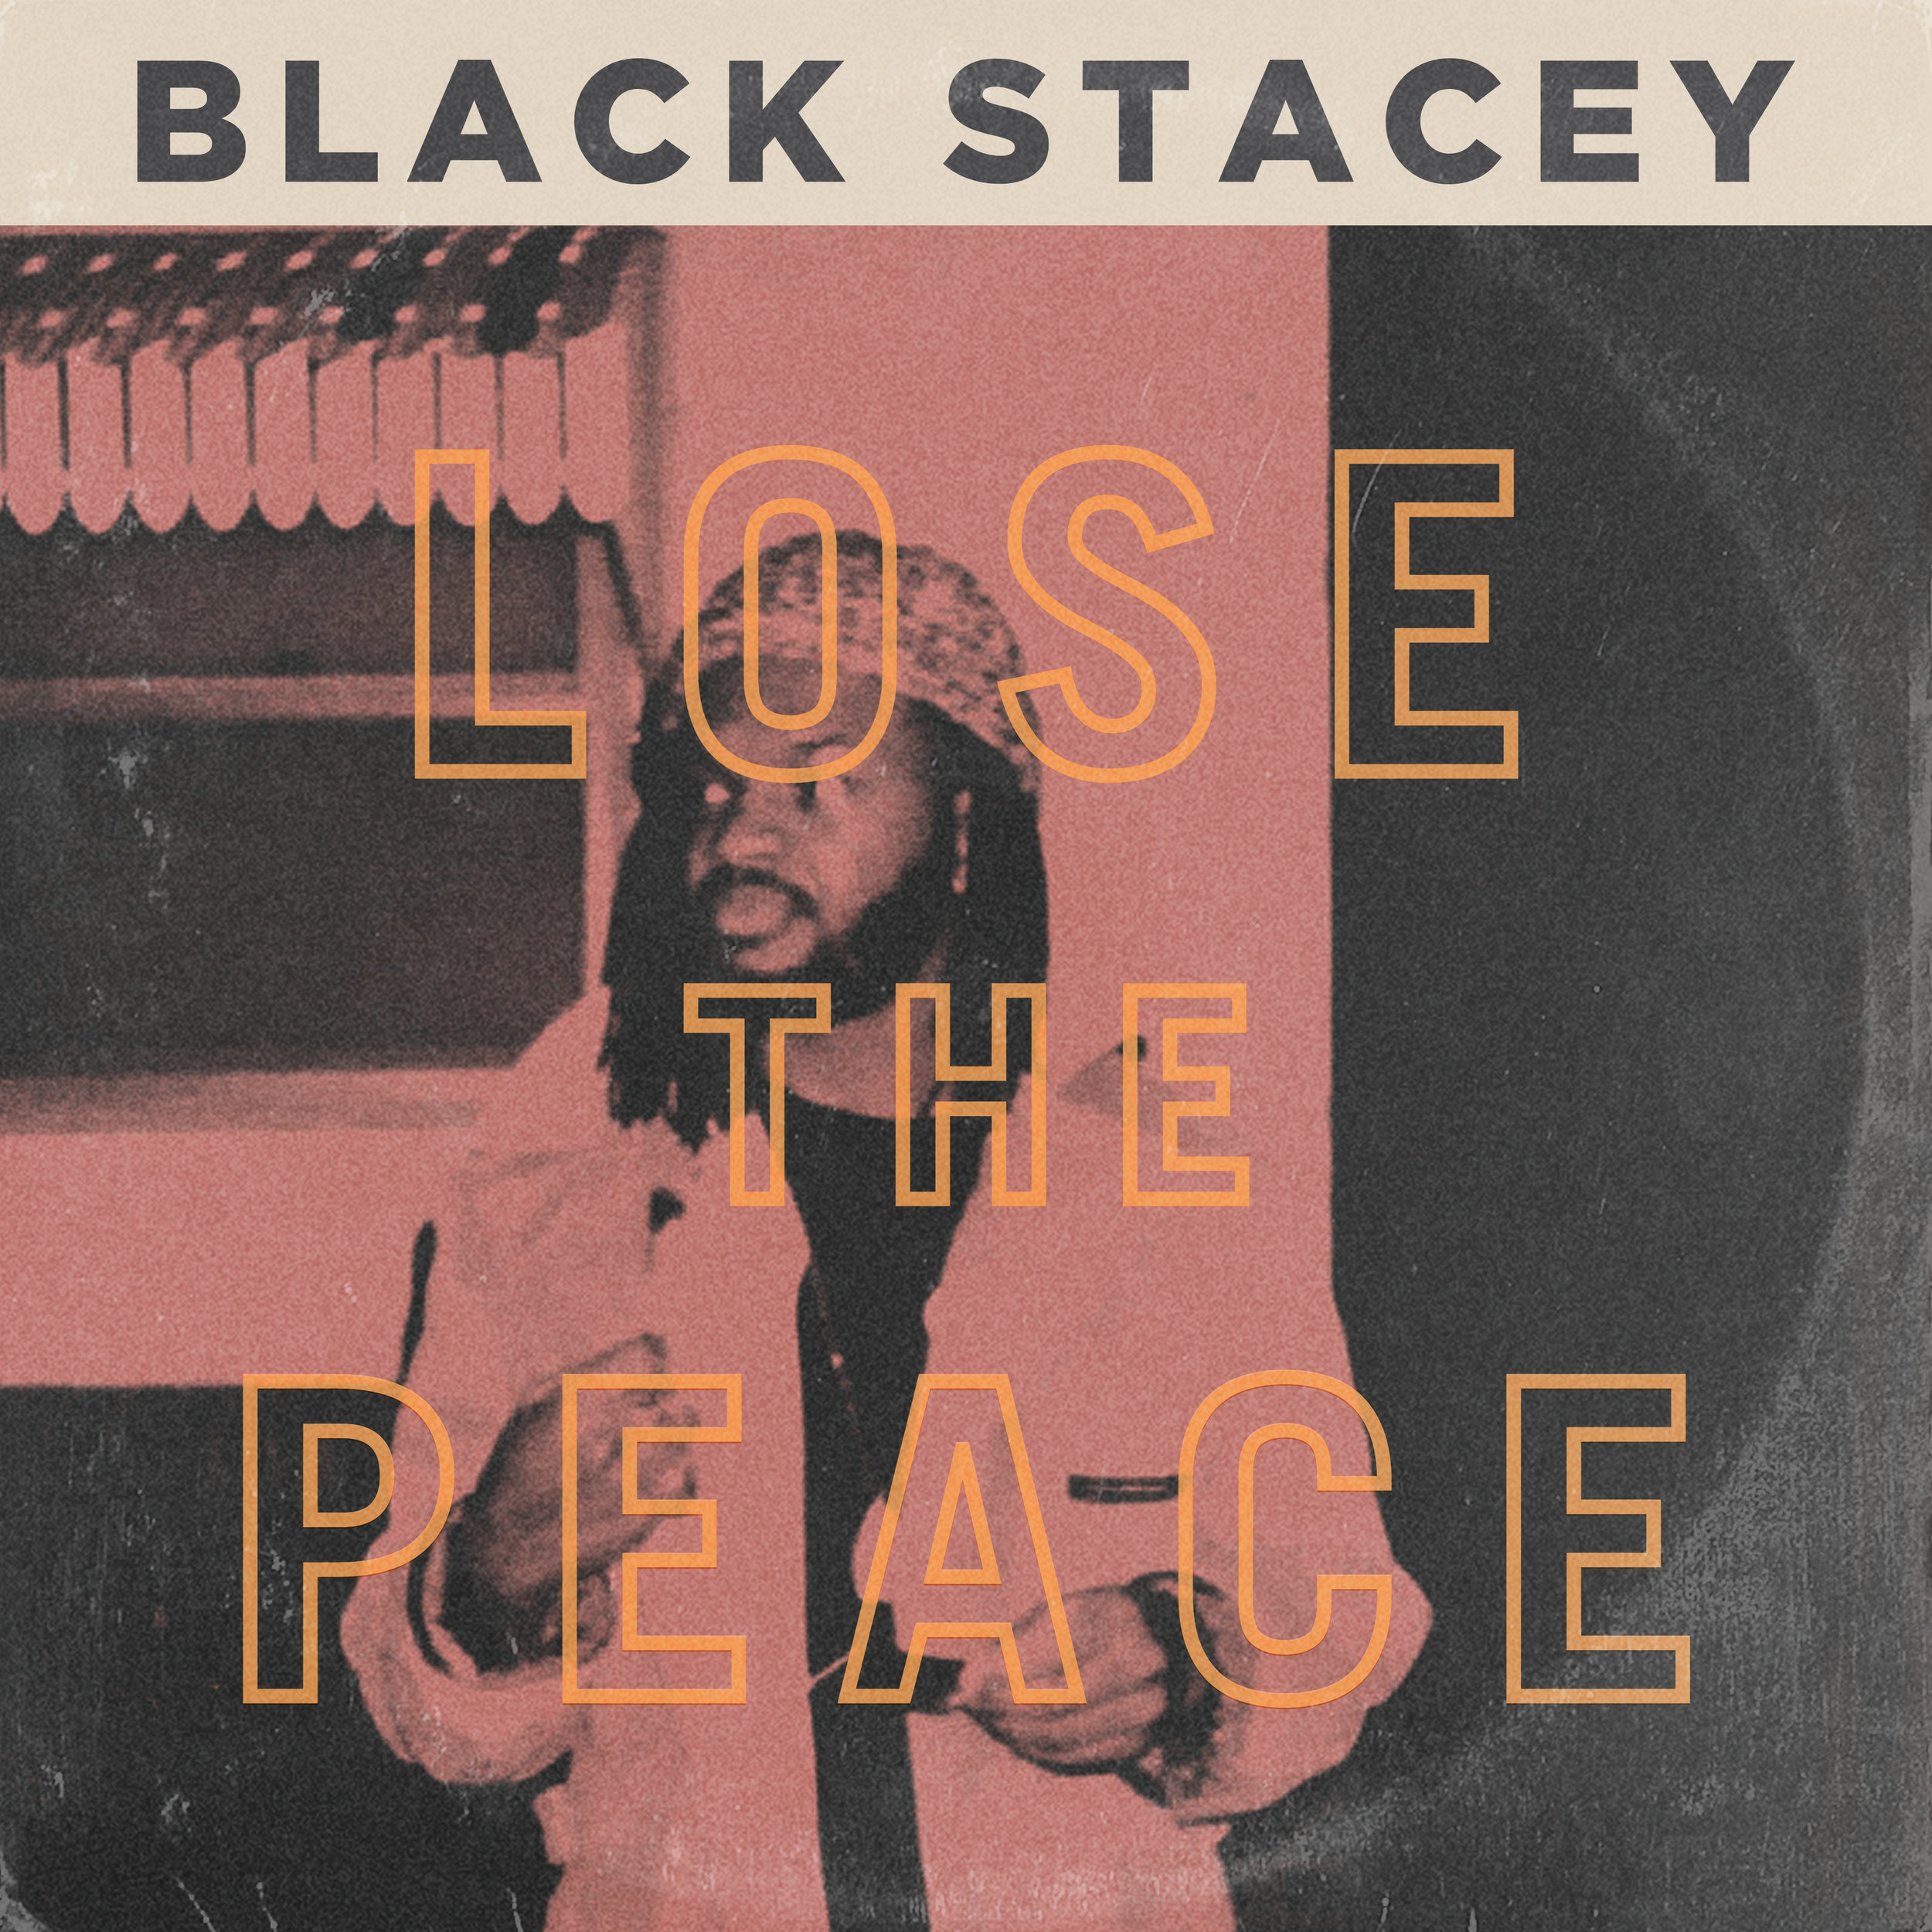 "A deep cut soul gem from Black Stacey's upcoming EP, "" Lose the Peace.""  Co-produced/mixed/mastered by Joel Nanos at Element Studios the track features Julia Hail (Hi-Lux), principal violist of the Kc Symphony Christine Grossman, horns players Michael Raehpour and Grant Morgan. The record tells the story of a relationship between father and daughter. And with this track giving the back story and possible end of said relationship, it only makes sense that it's Black Stacey's most involved song to date"